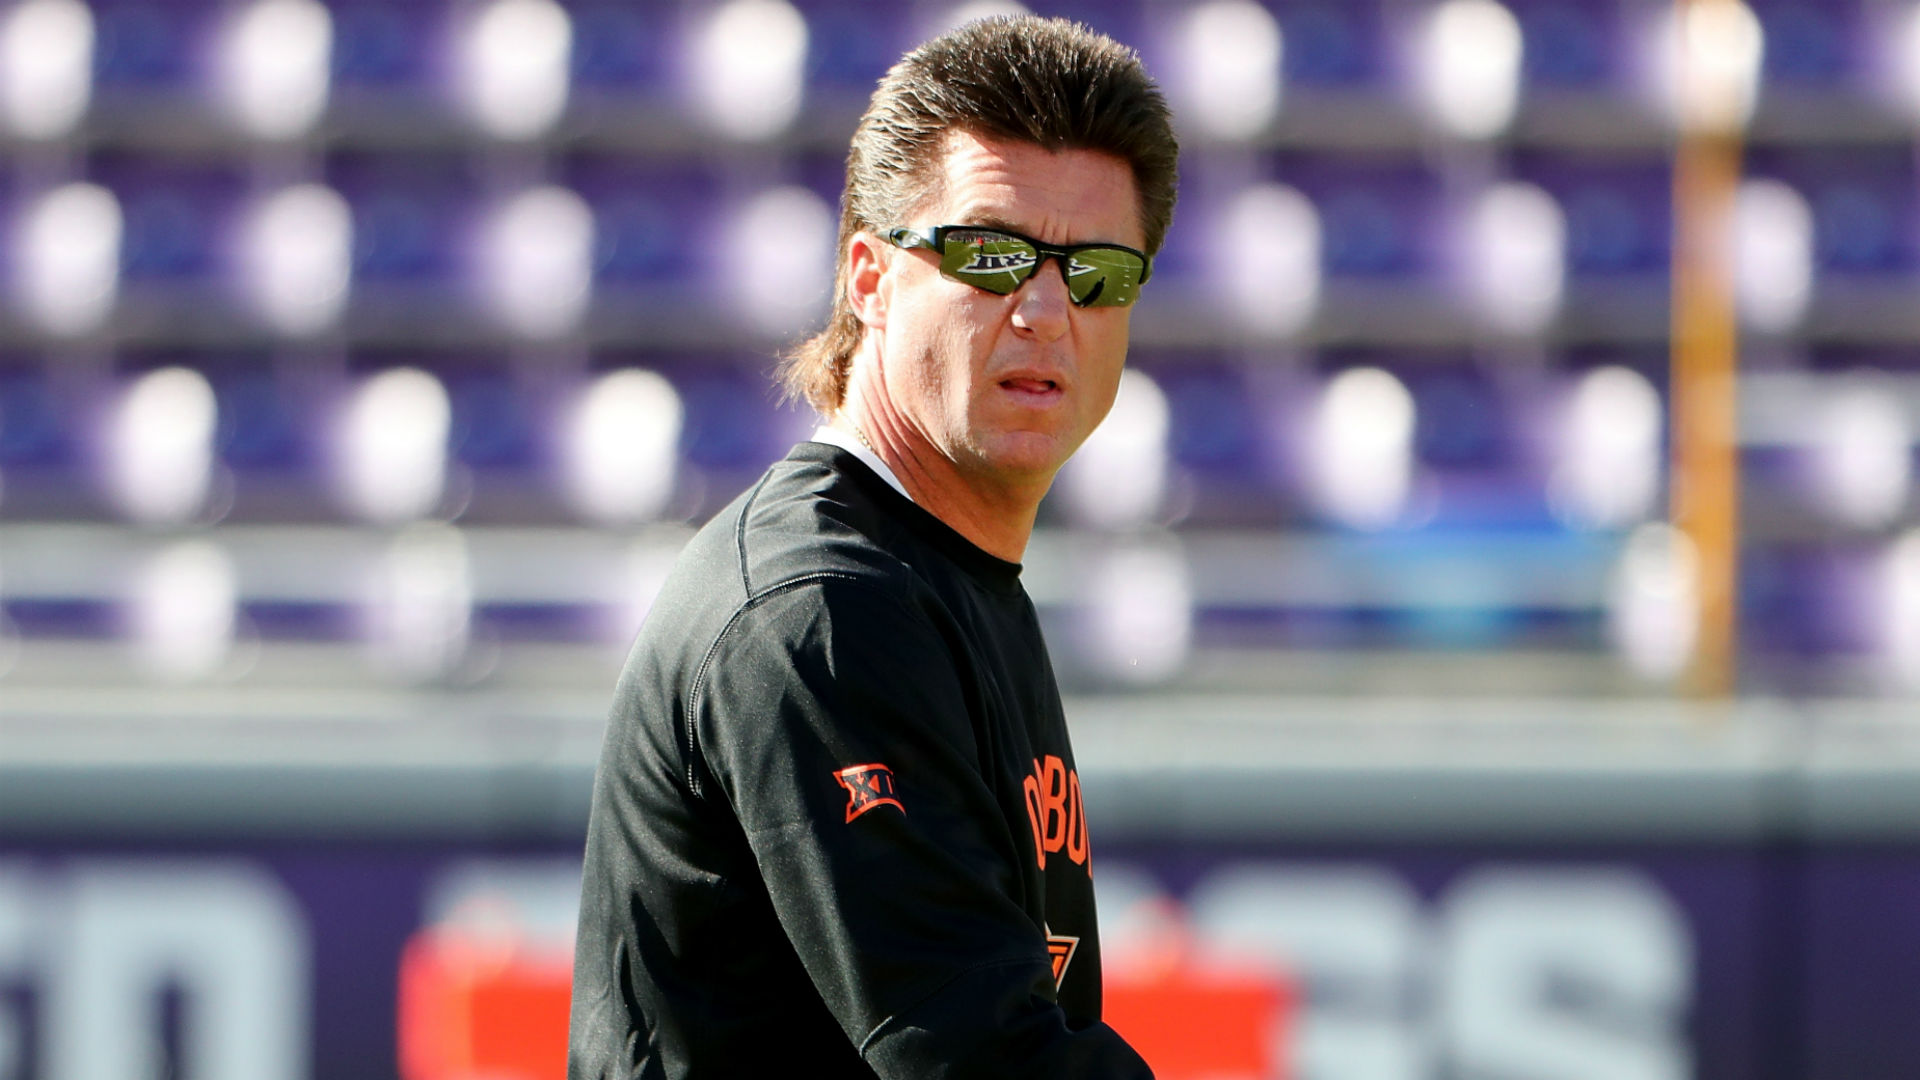 Mike Gundy's crazy coronavirus comments don't mean all college coaches speak like fools